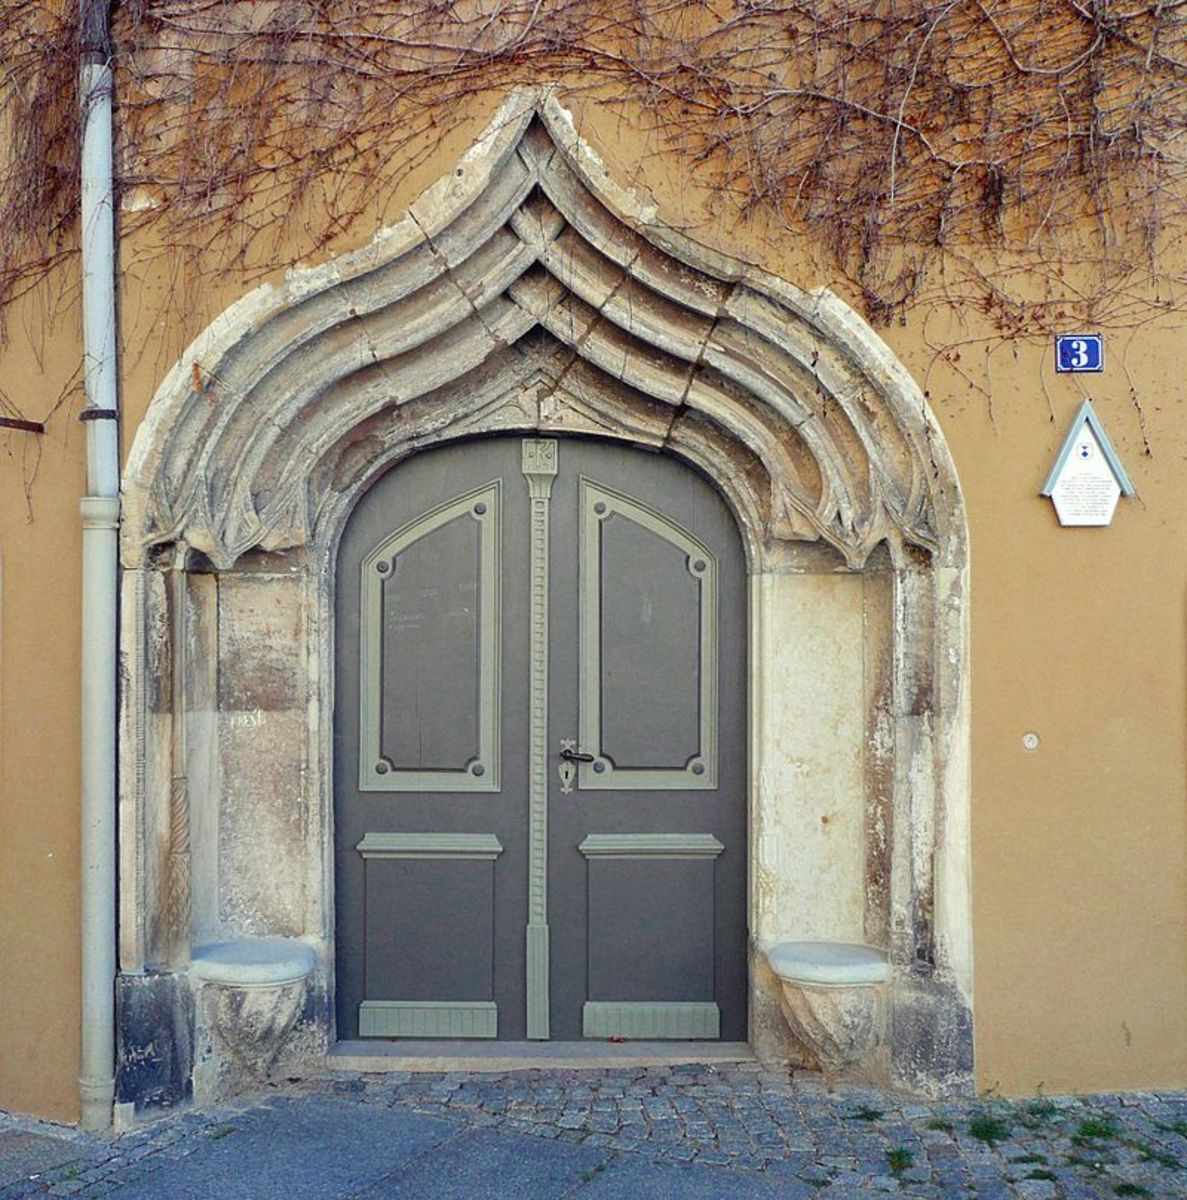 An ogee-arched doorway in Pirna, Germany